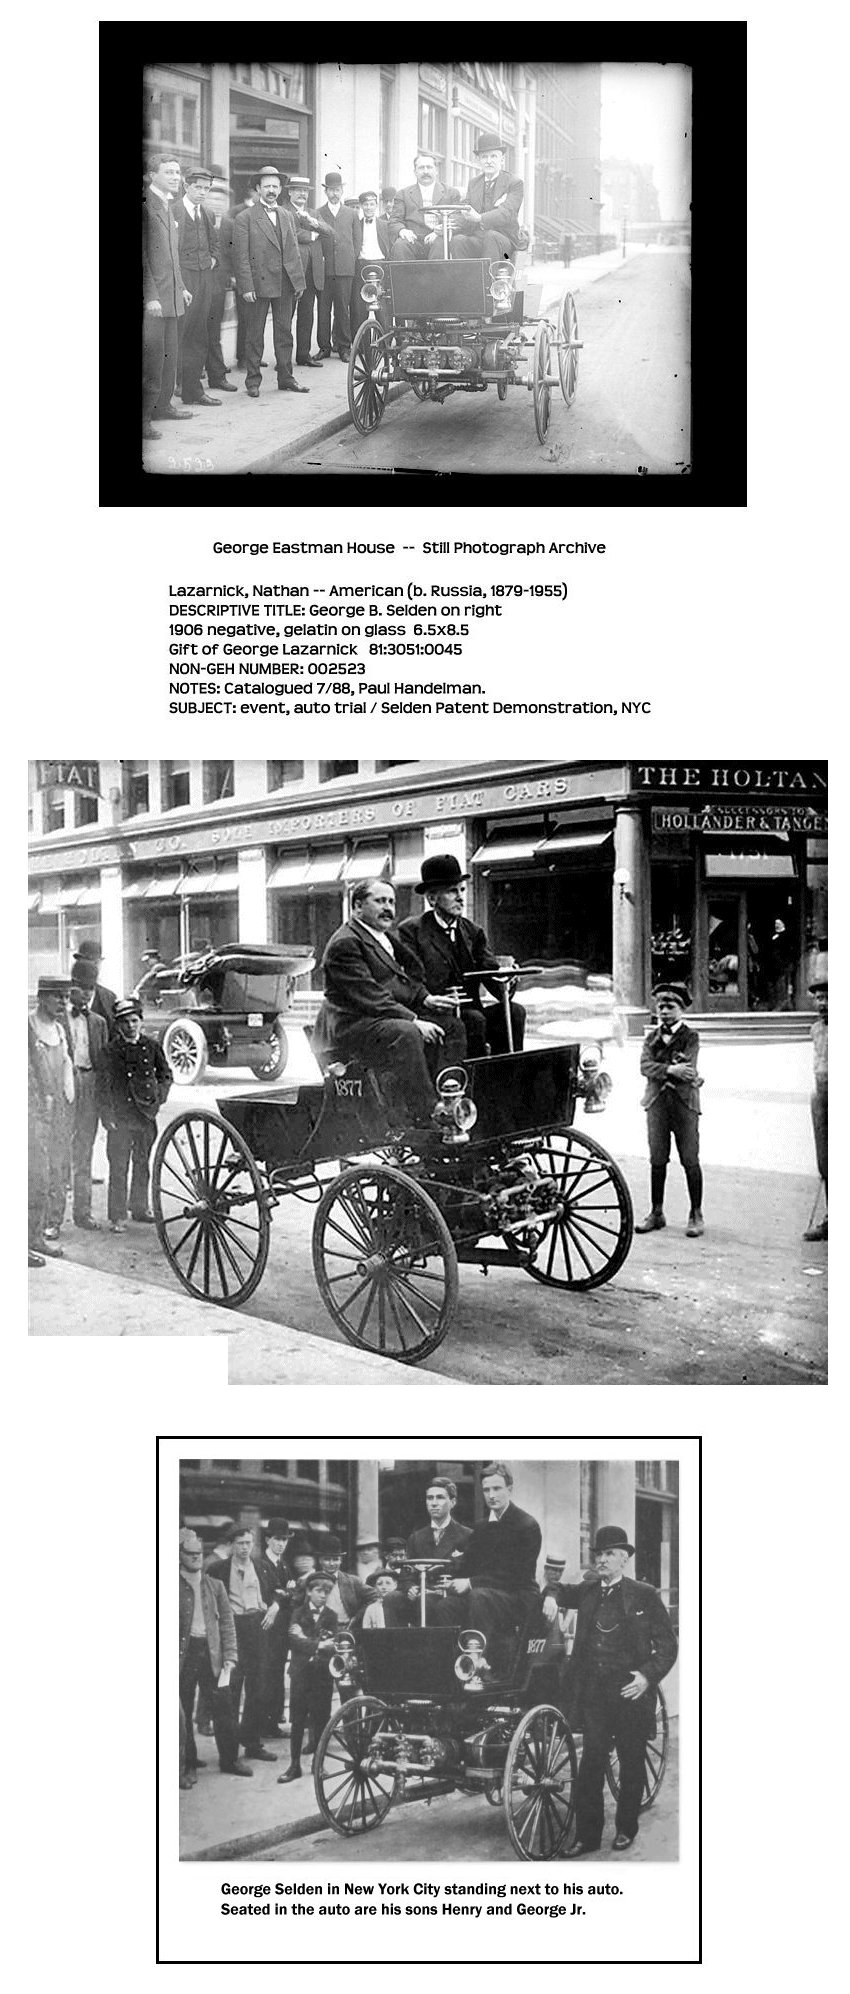 Charles and Frank Duryea: Brought Us Americas First Gasoline-Powered Car (Titans of Fortune)